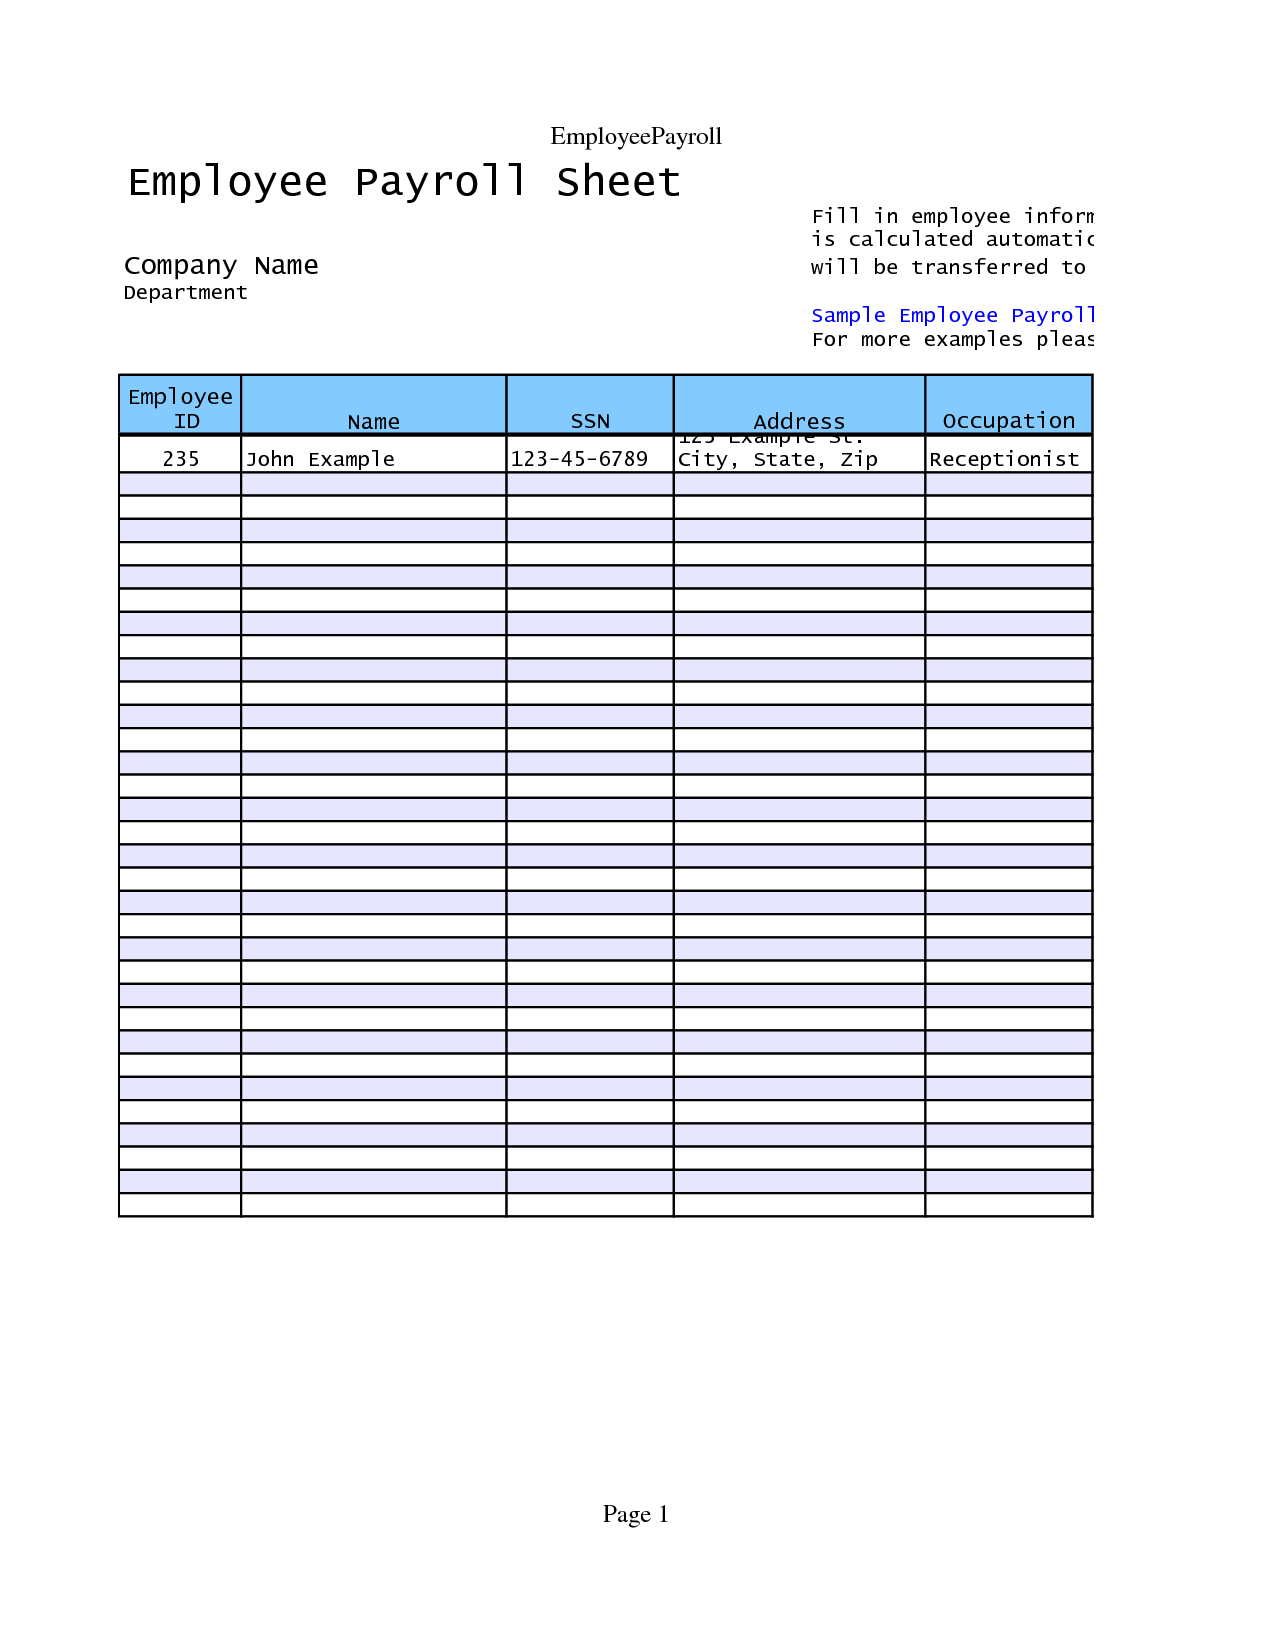 Pay Statement Template and Editable Payroll Slip and Pay Stub Template for Microsoft Word